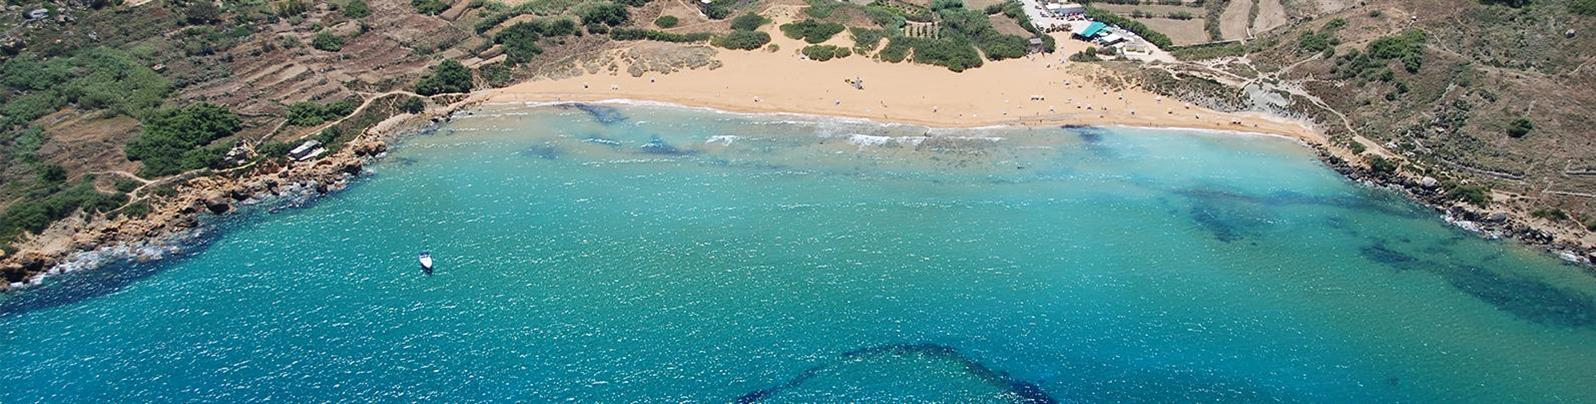 secluded beach in gozo